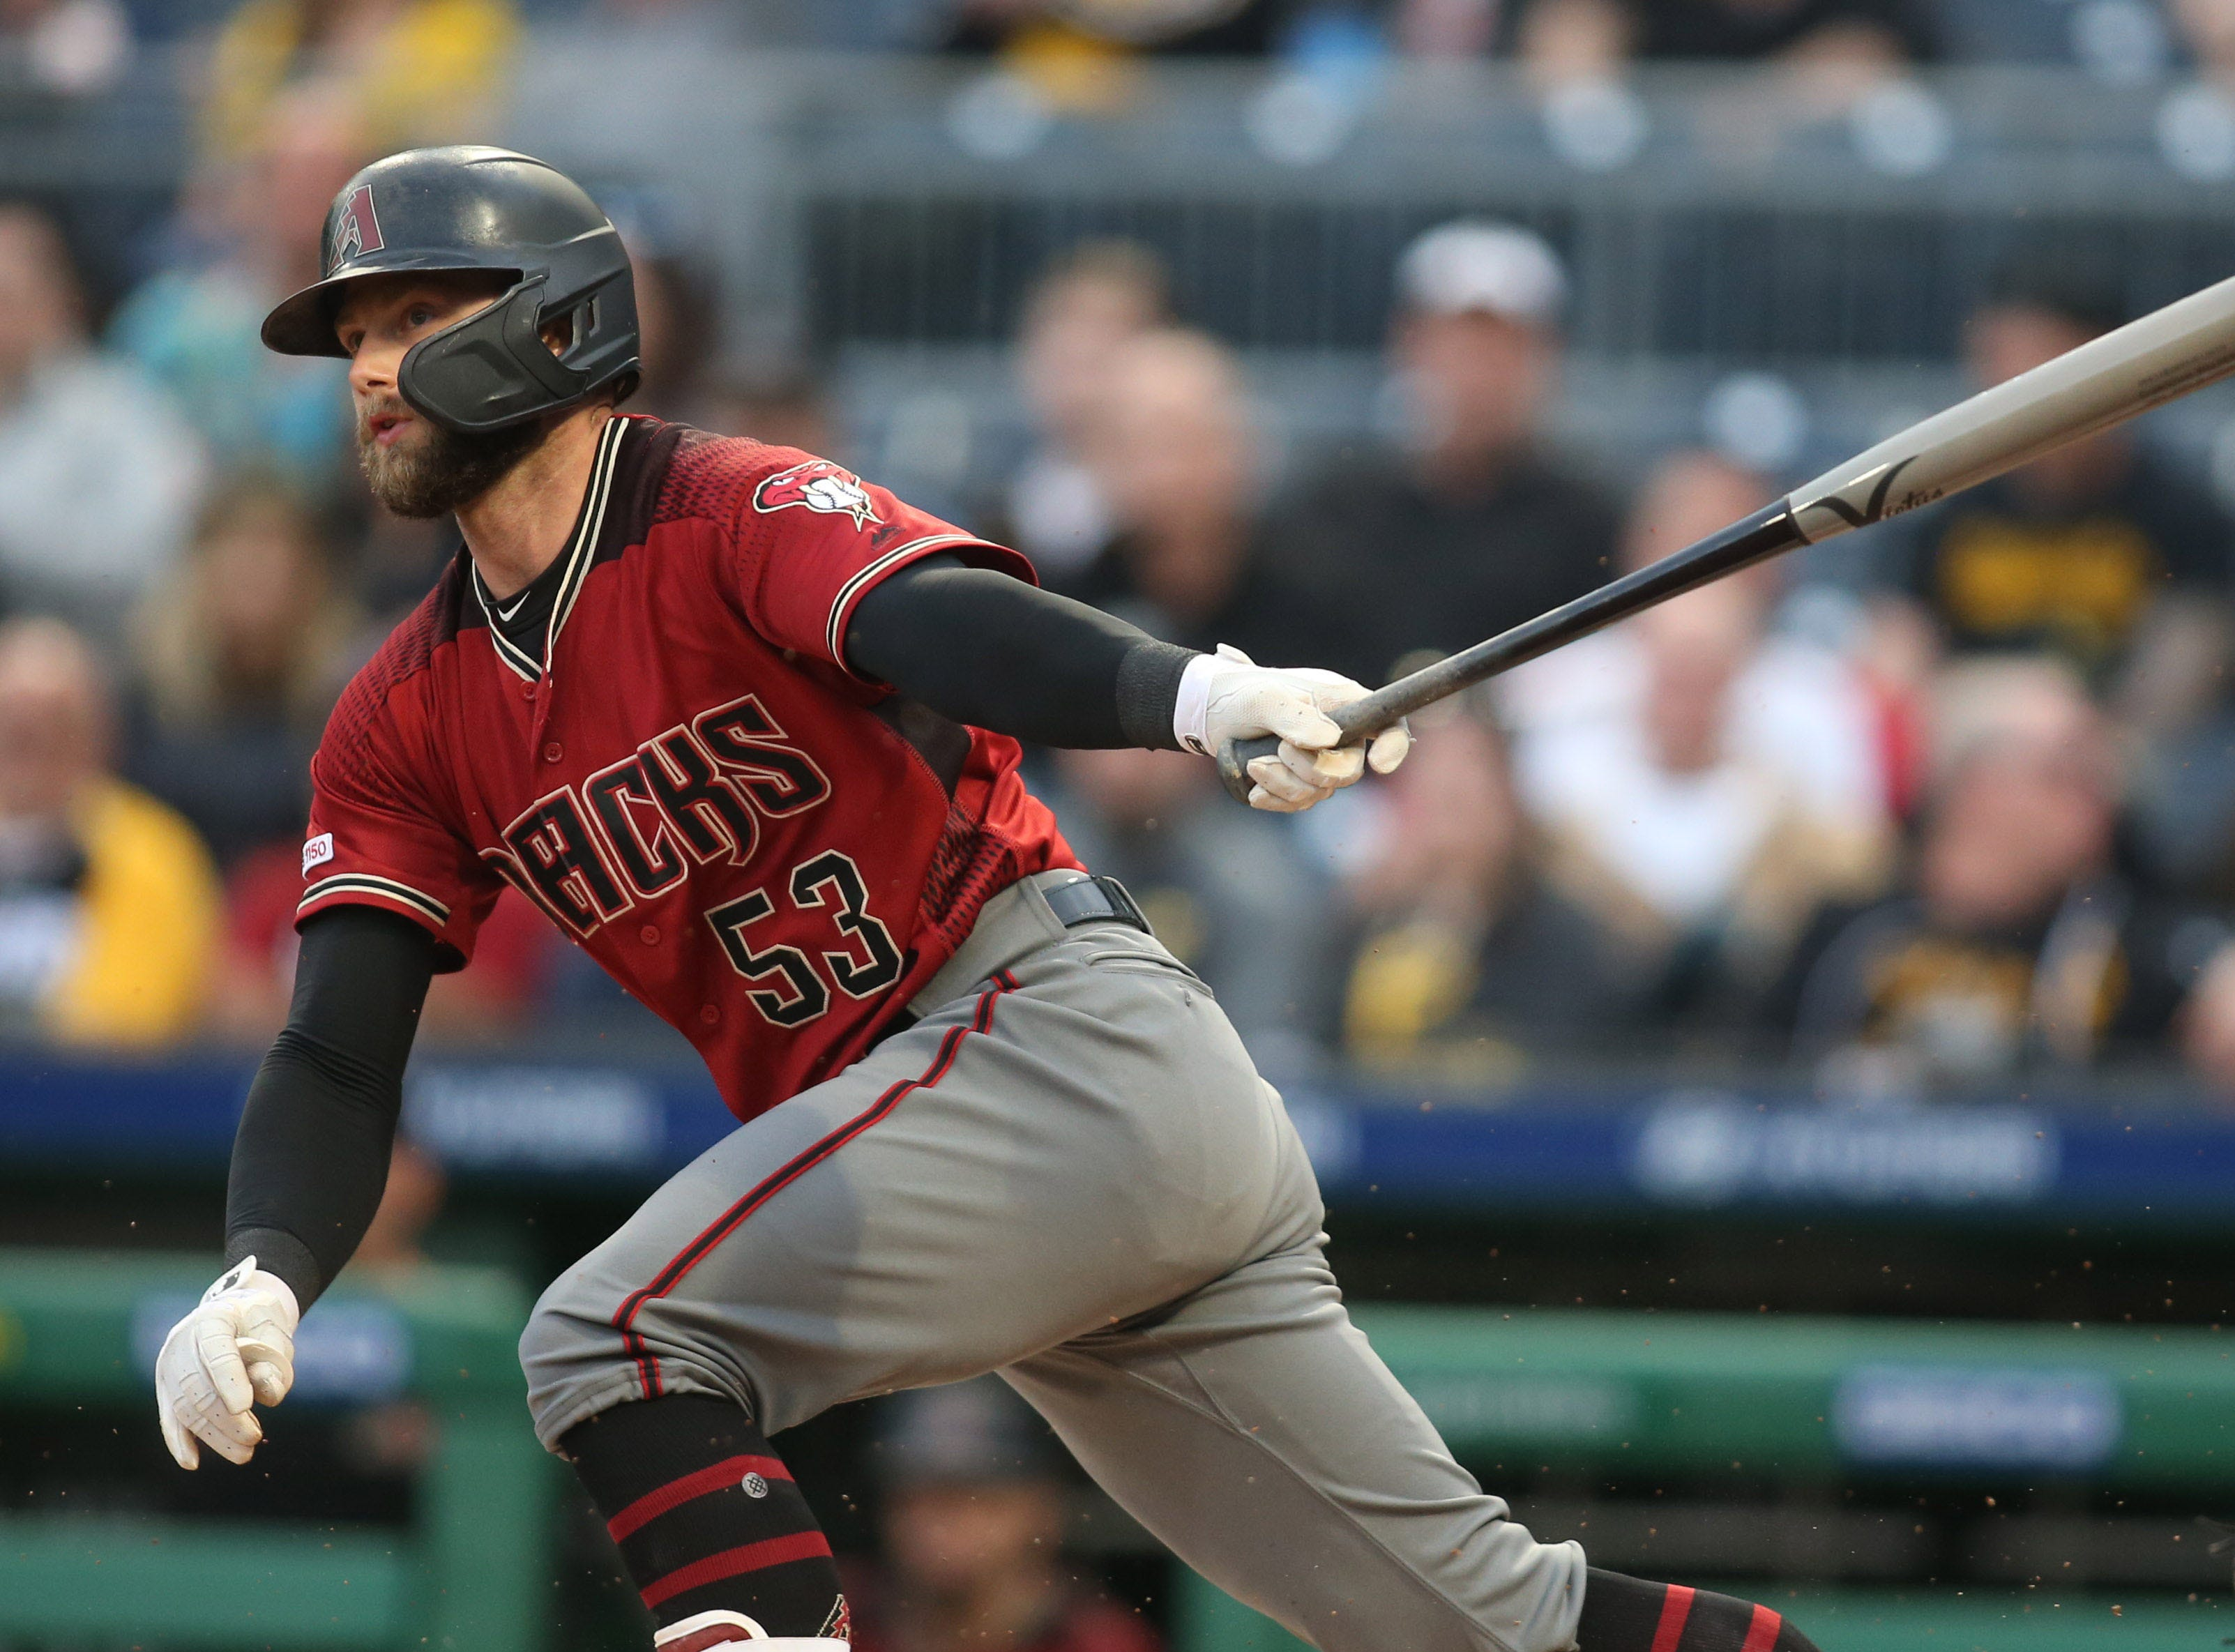 Apr 24, 2019; Pittsburgh, PA, USA; Arizona Diamondbacks first baseman Christian Walker (53) singles against the Pittsburgh Pirates during the first inning at PNC Park. Mandatory Credit: Charles LeClaire-USA TODAY Sports